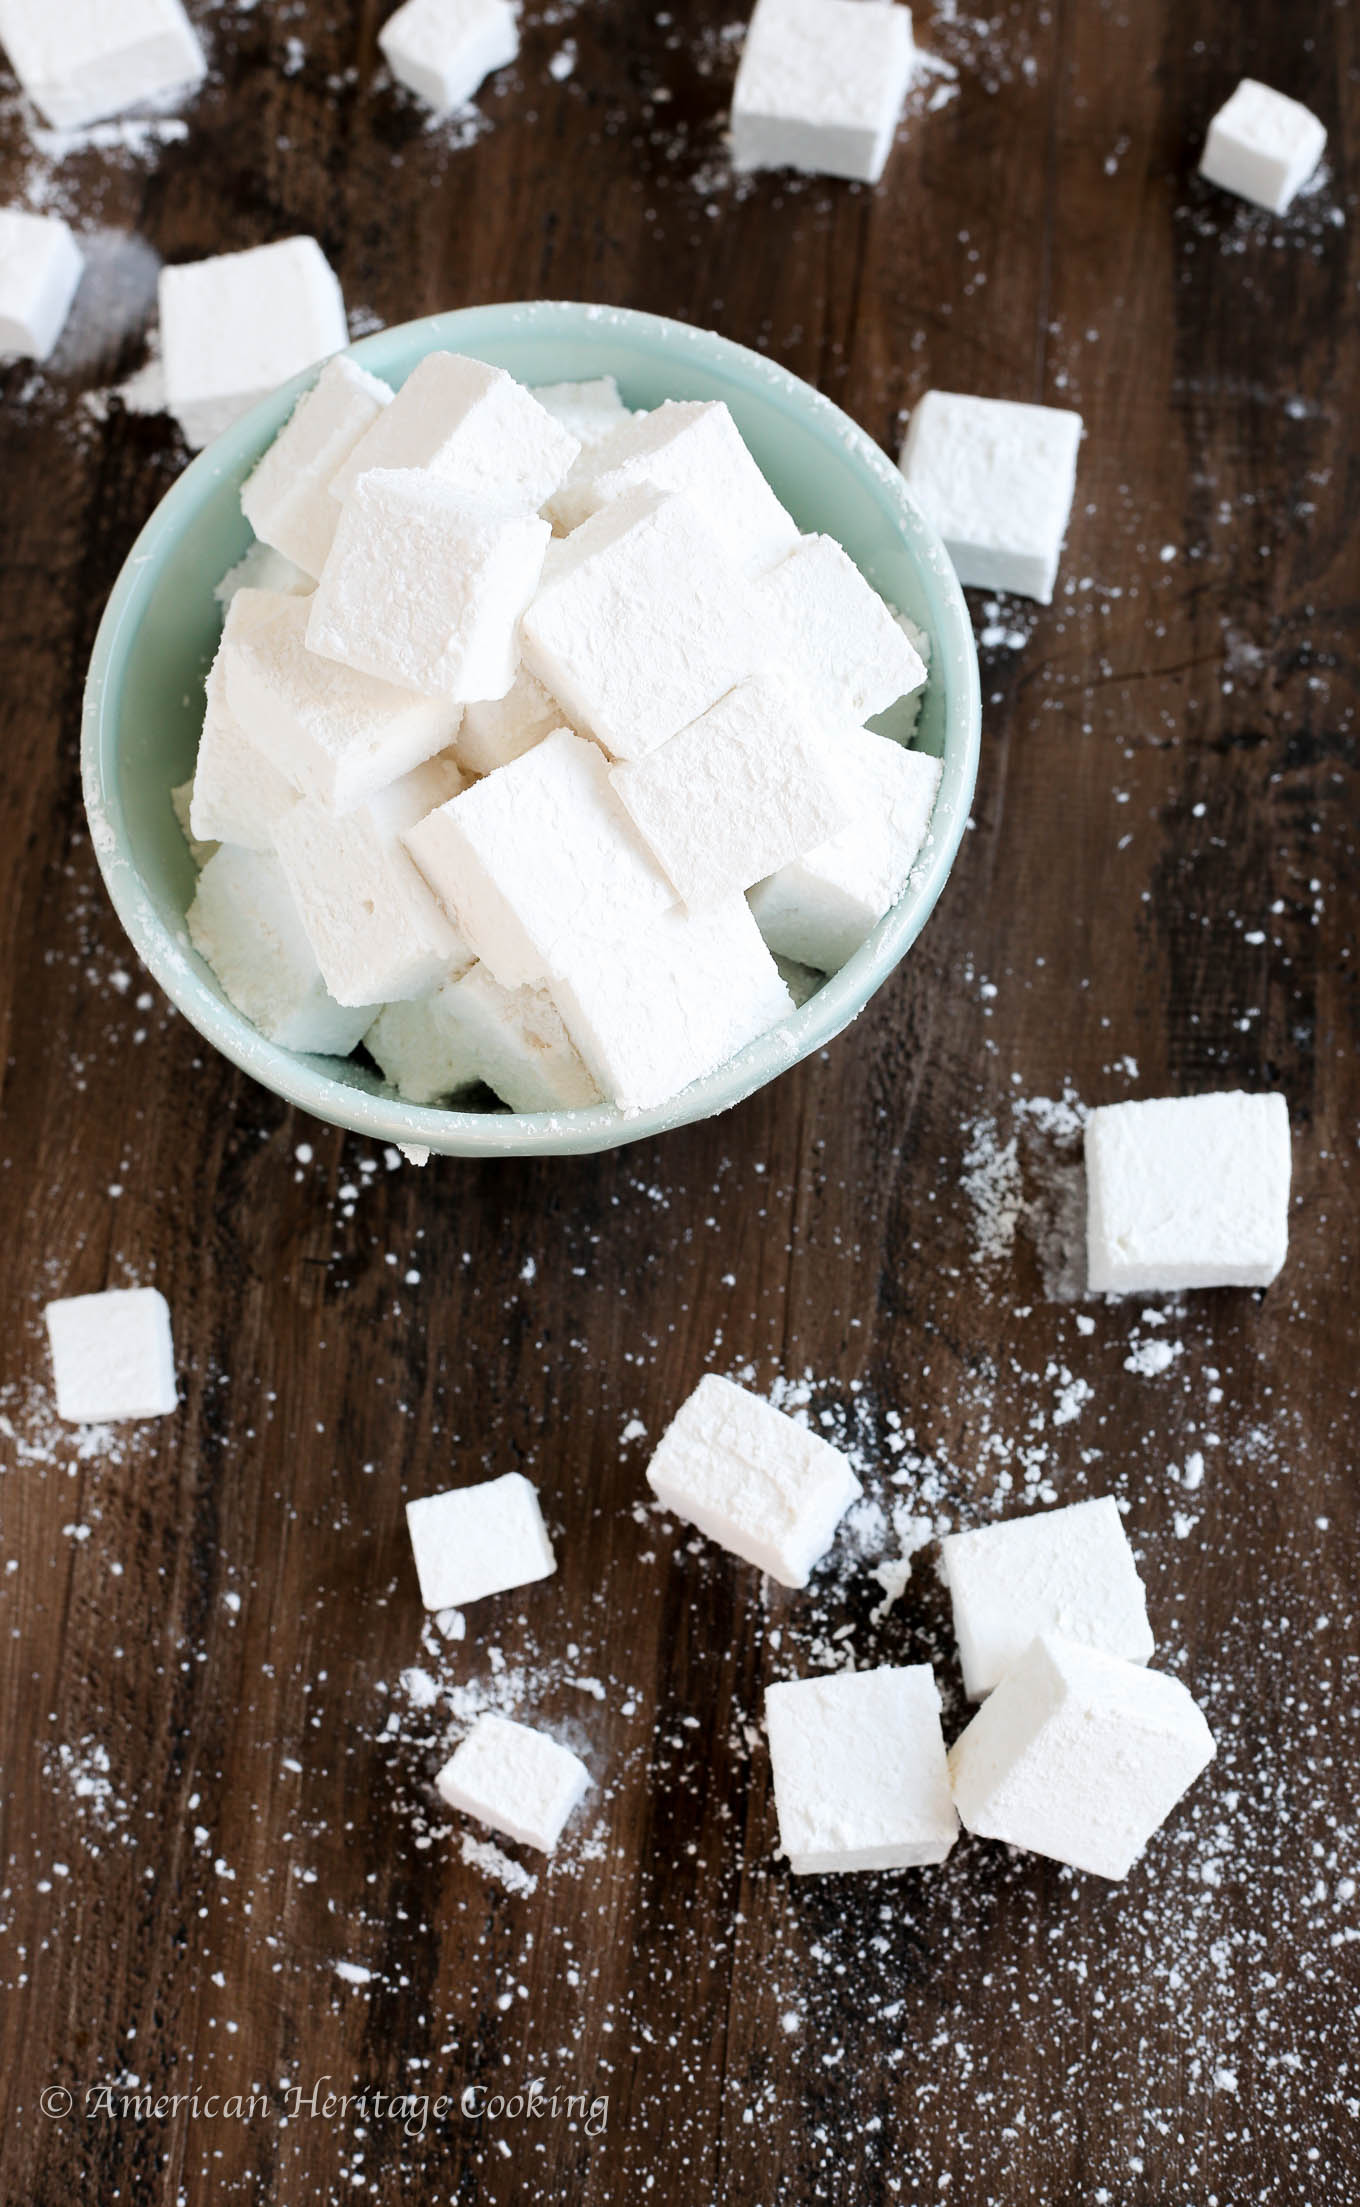 Instantly elevate your hot chocolate, s'mores, or campfire game with these homemade marshmallows! They are soft and fluffy, and perfectly sweet with just a hint of vanilla.